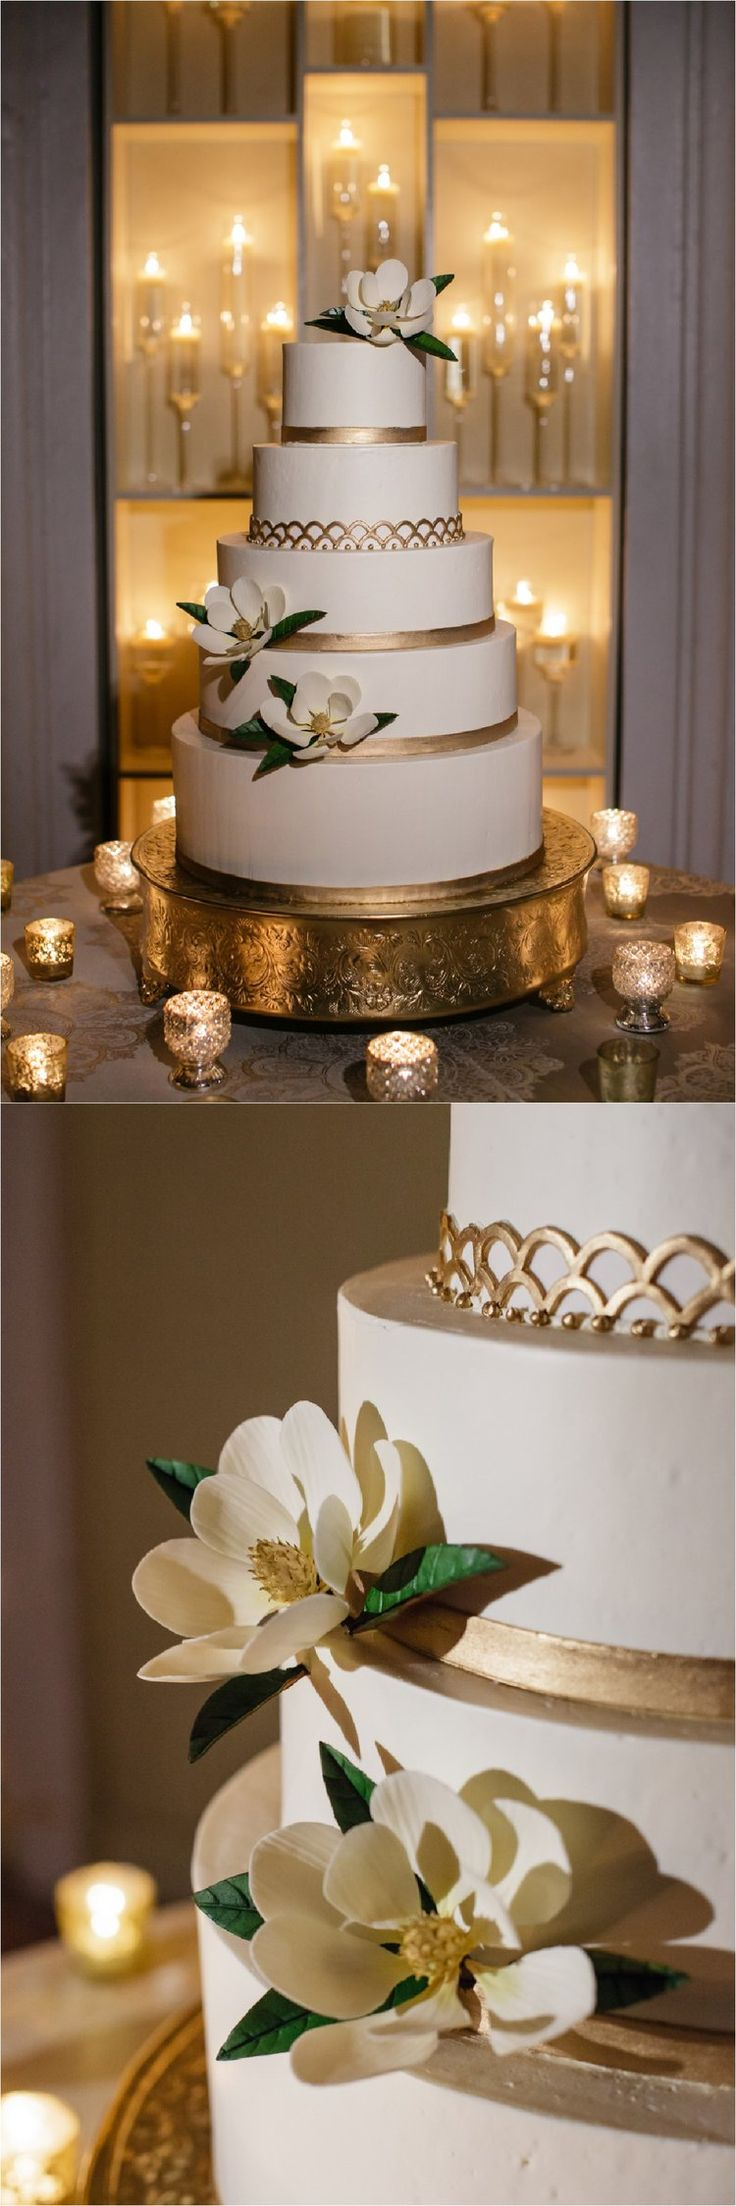 Gold and white cake with magnolia flowers | Melissa's Fine Pastries | How to transform an open ballroom with stunning decor | Sapphire Events | Greer G Photography | Board of Trade | White and Gold Wedding | Winter Wedding Inspiration | White and Green Wedding | Ballroom wedding